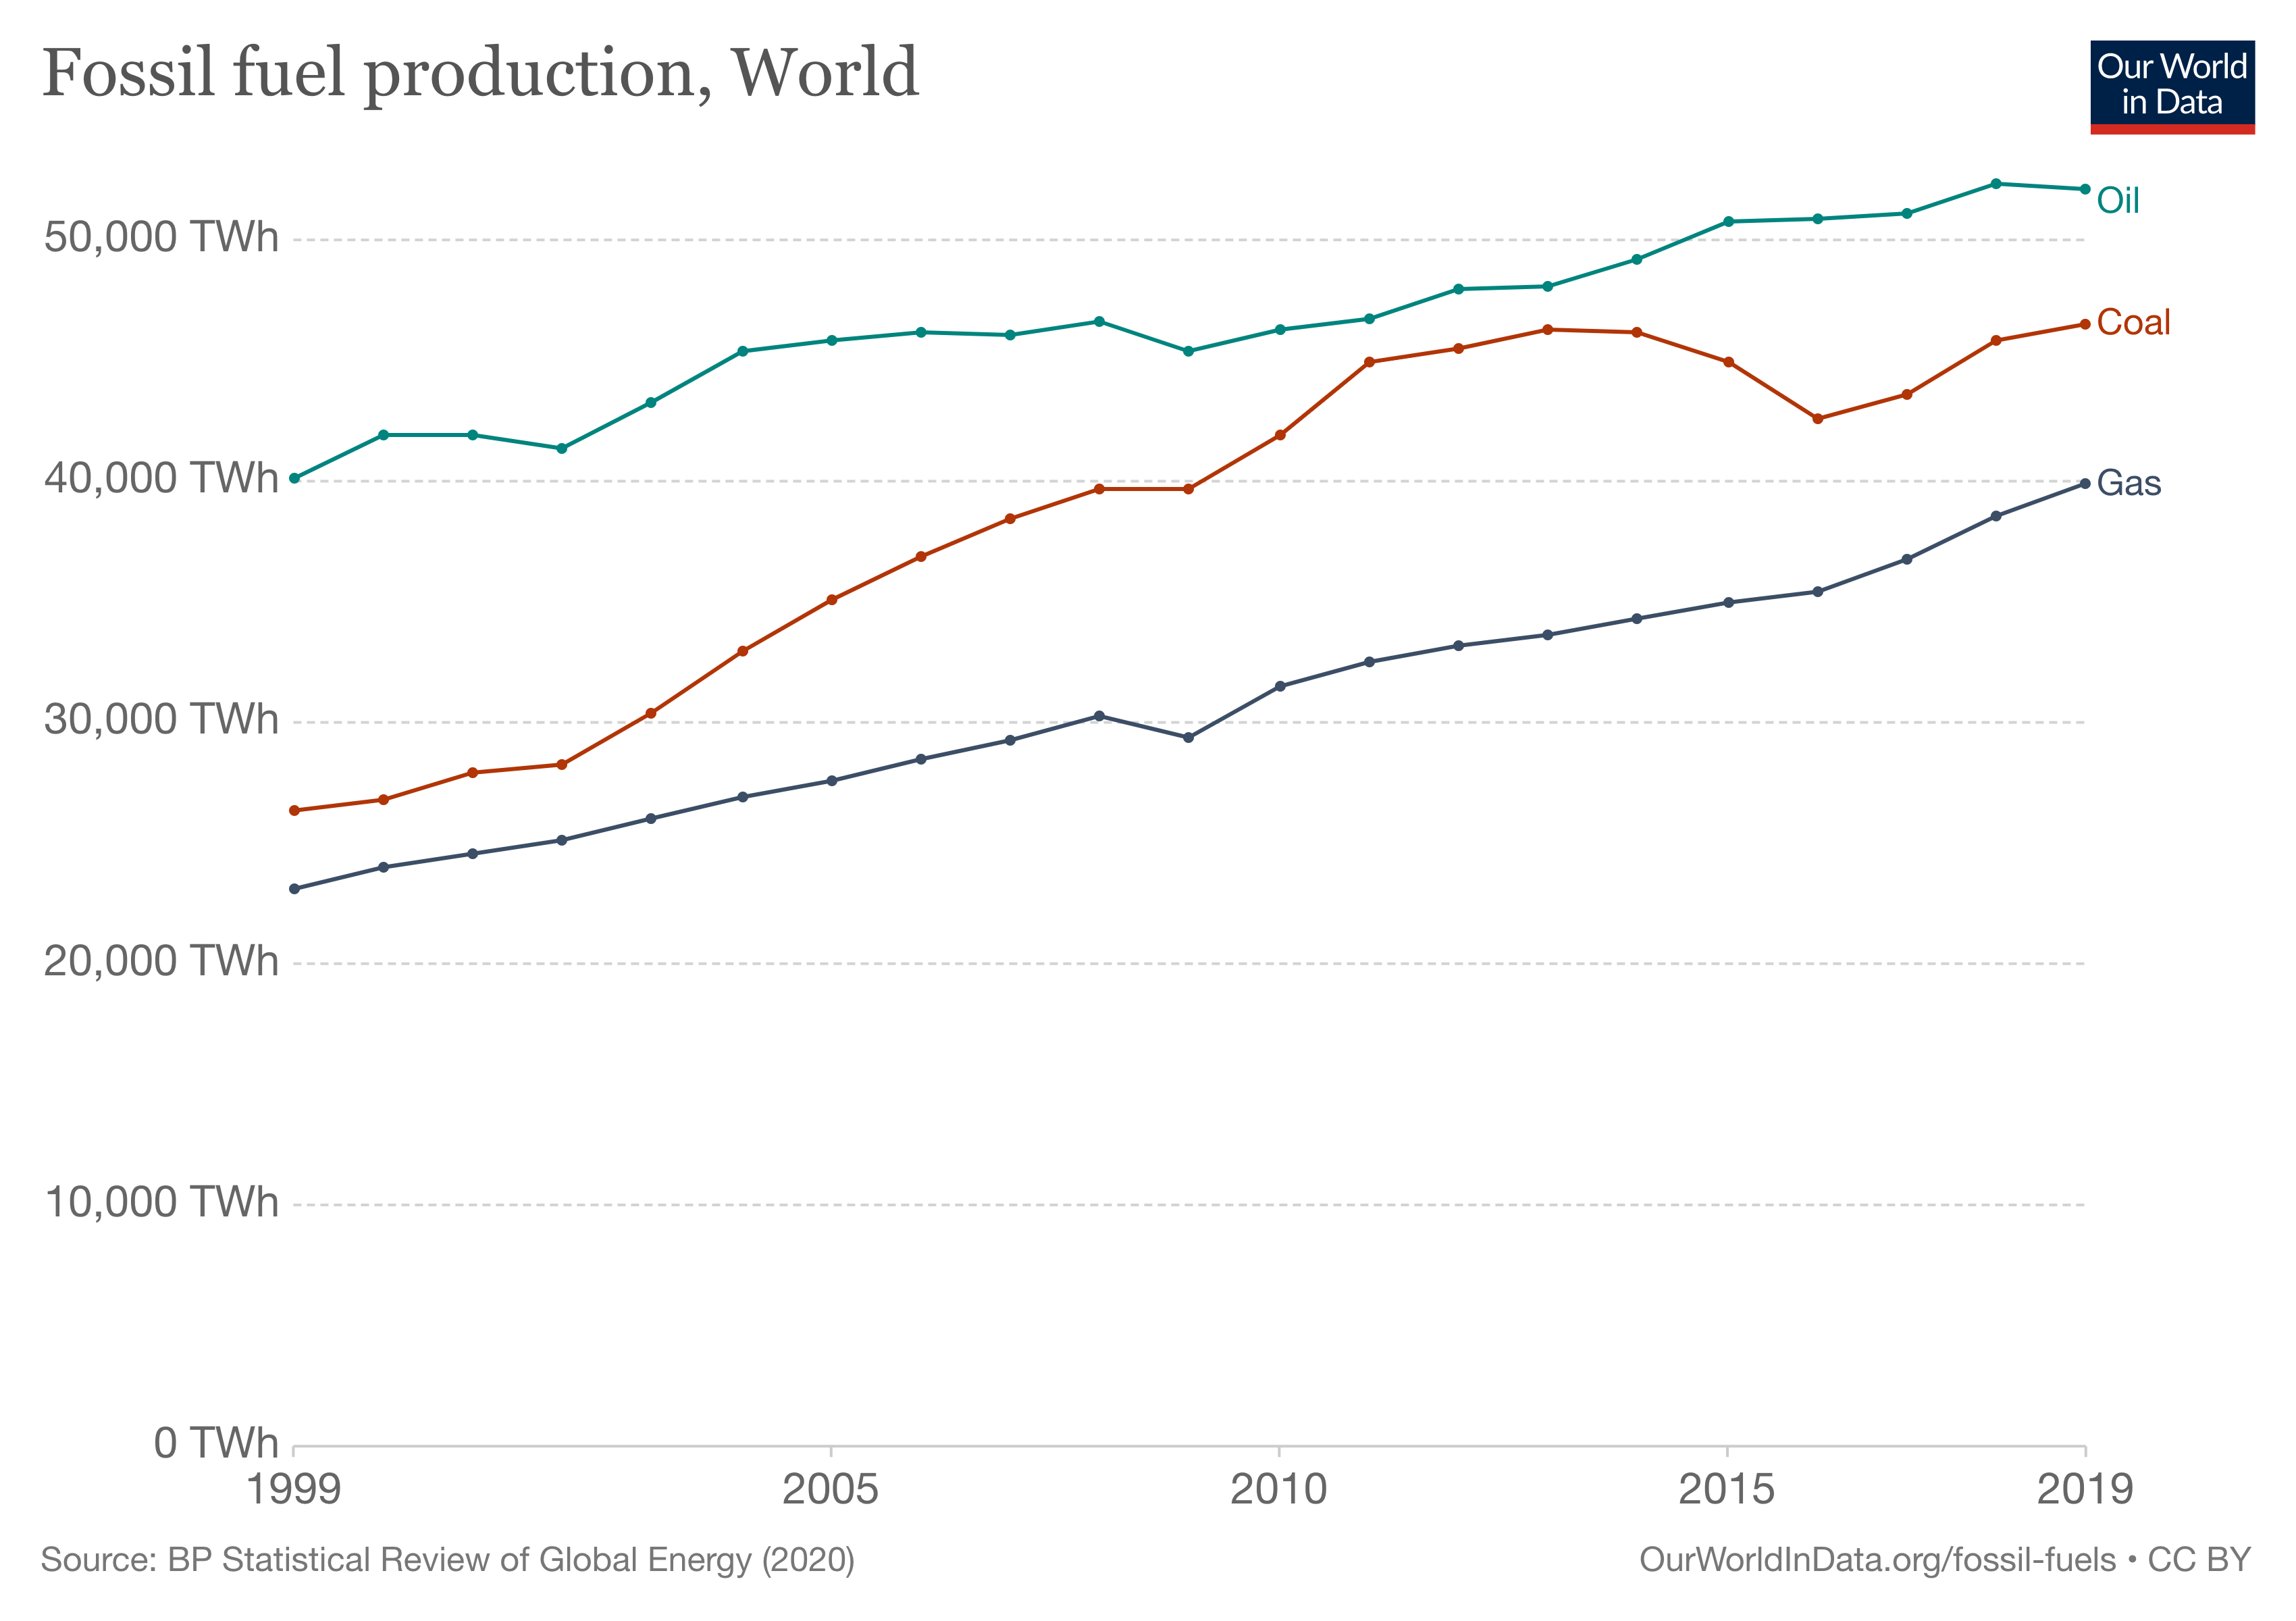 Chart showing the amount of fossil fuel production per year